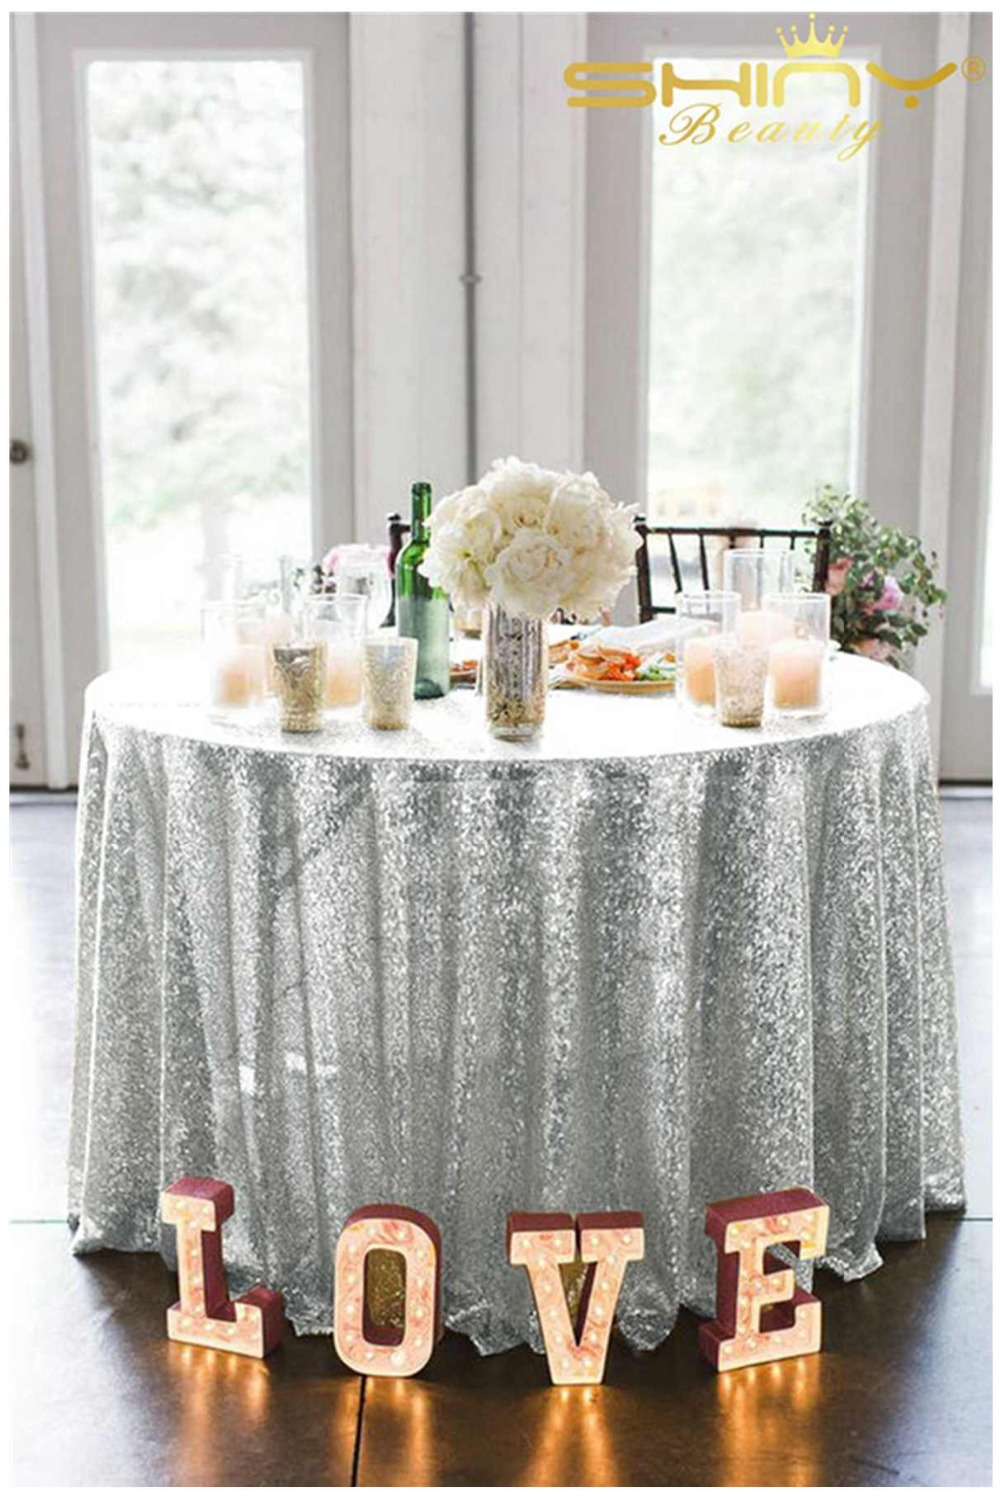 sequin tablecloth 72 inch round for wedding party Decoration Sparkle Tablecloth for Wedding Party Christmas Decorations Silv